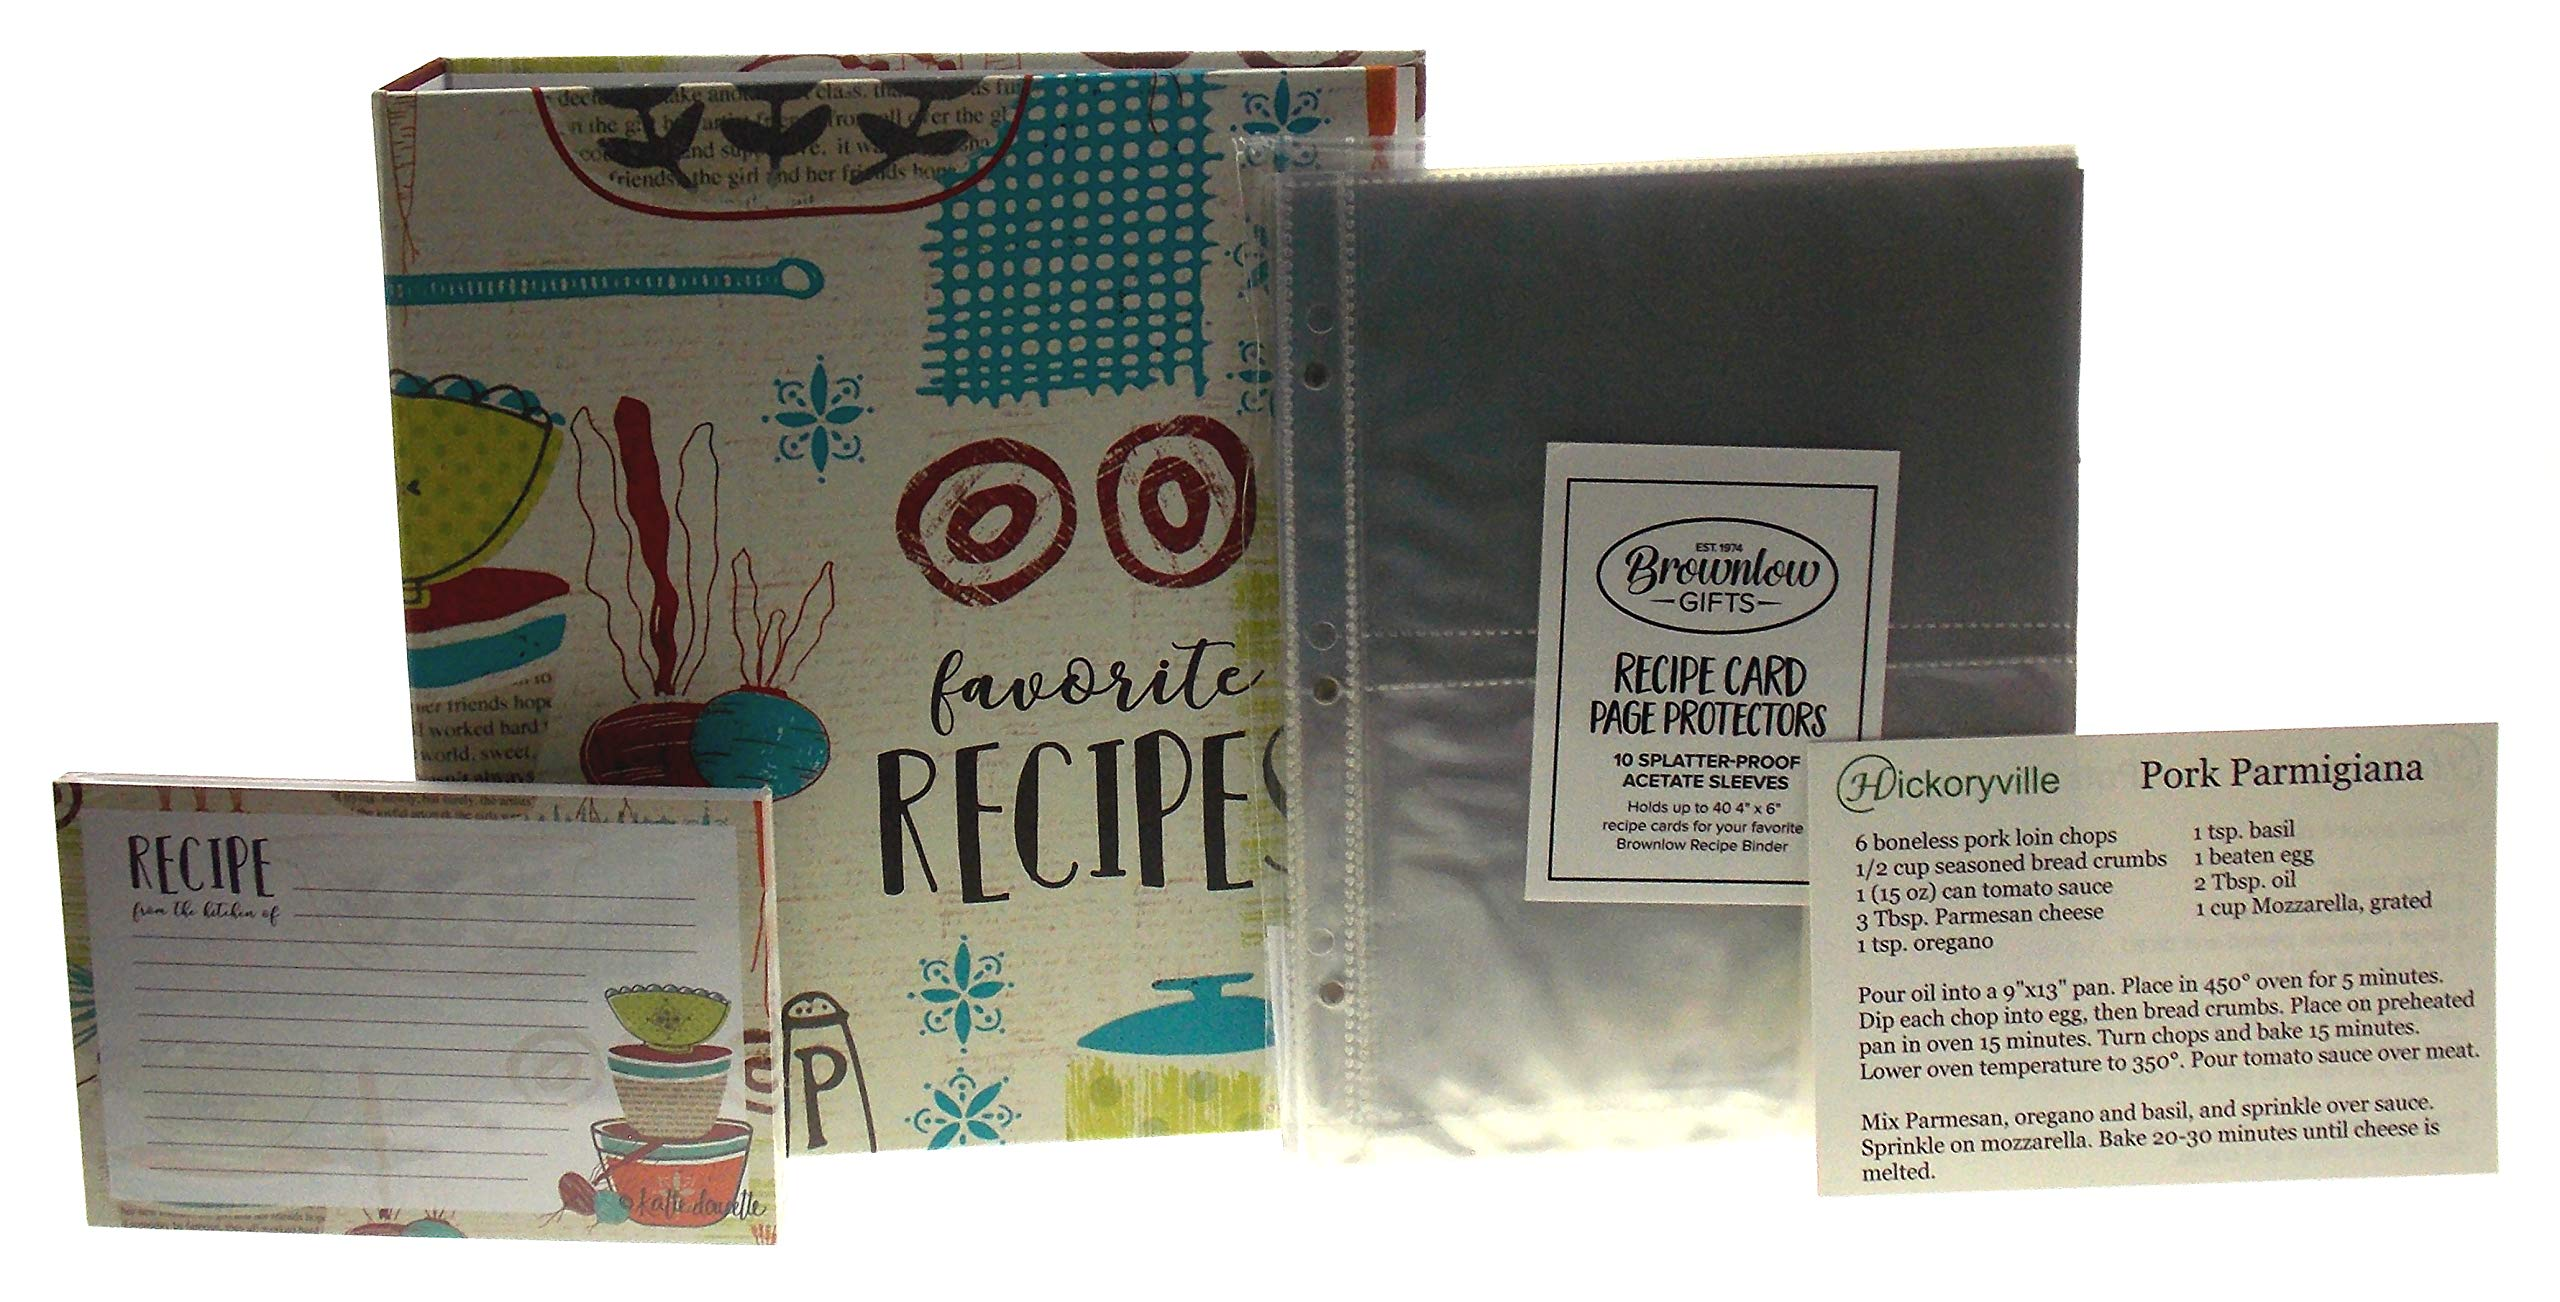 Recipe Book Bundle - Brownlow Made With Love''Favorite Recipes'' Binder with 4 x 6 Recipe Cards, Tabbed Dividers, Extra Recipe Cards, Protector Pages & 2 Bonus Recipes by Hickoryville by Hickoryville